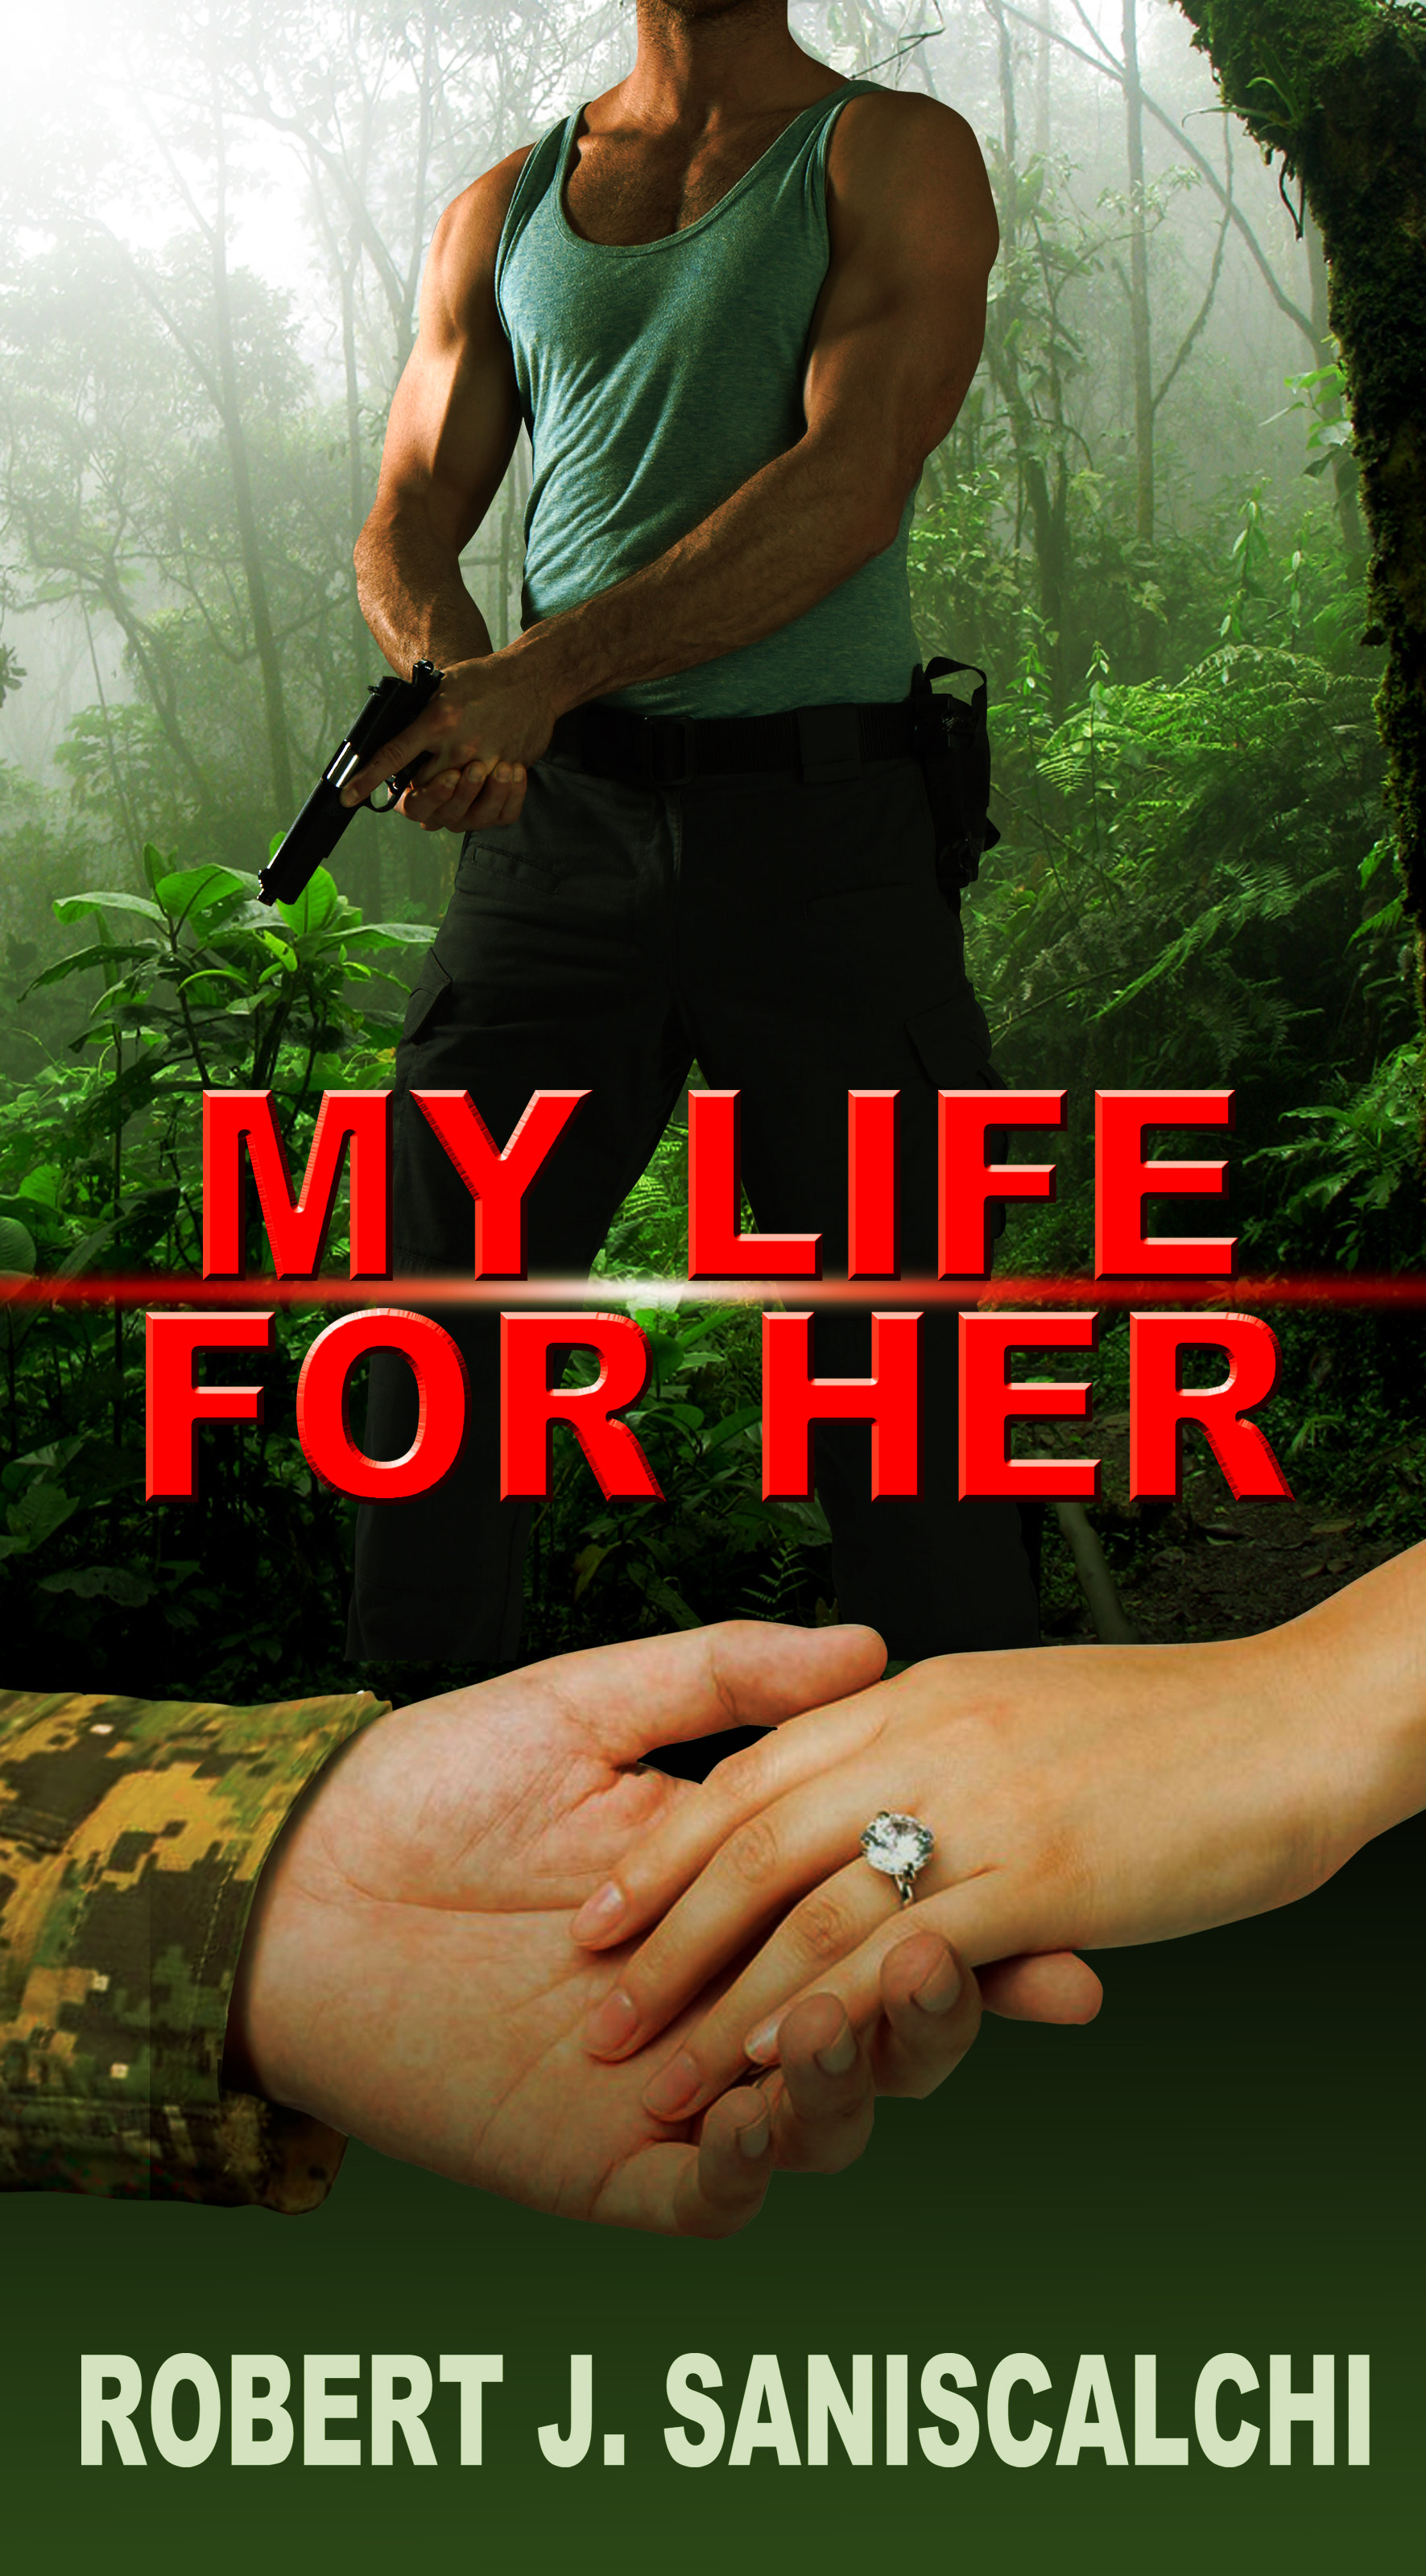 My Life For Her by Robert J. Saniscalchi